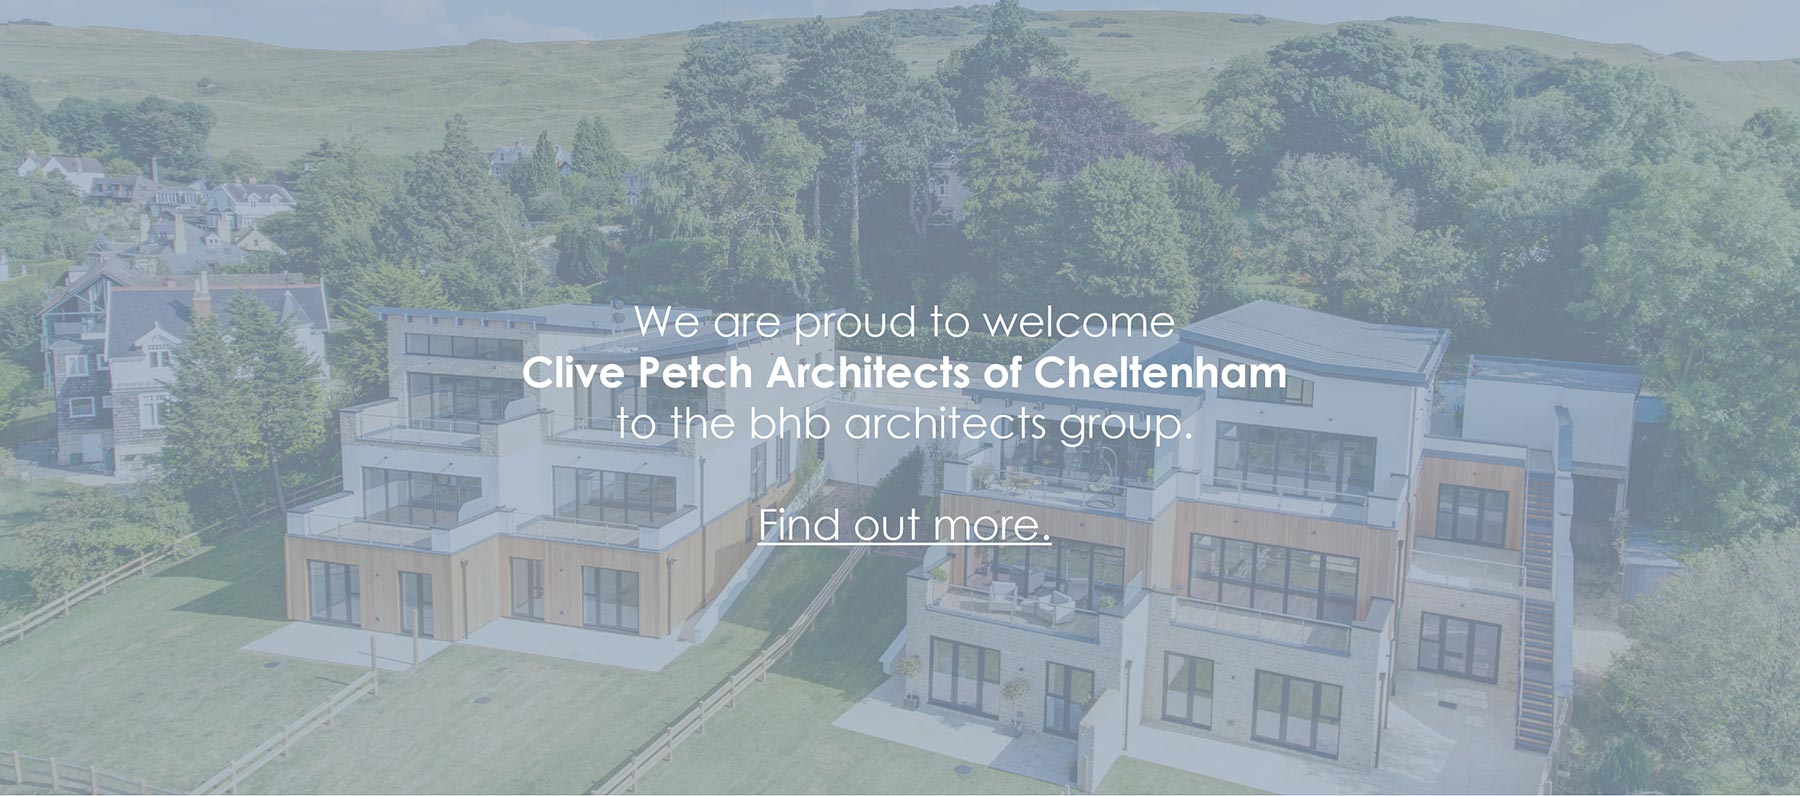 We are pround to welcome Clive Petch Architects of Cheltenham to the bhb architects group.